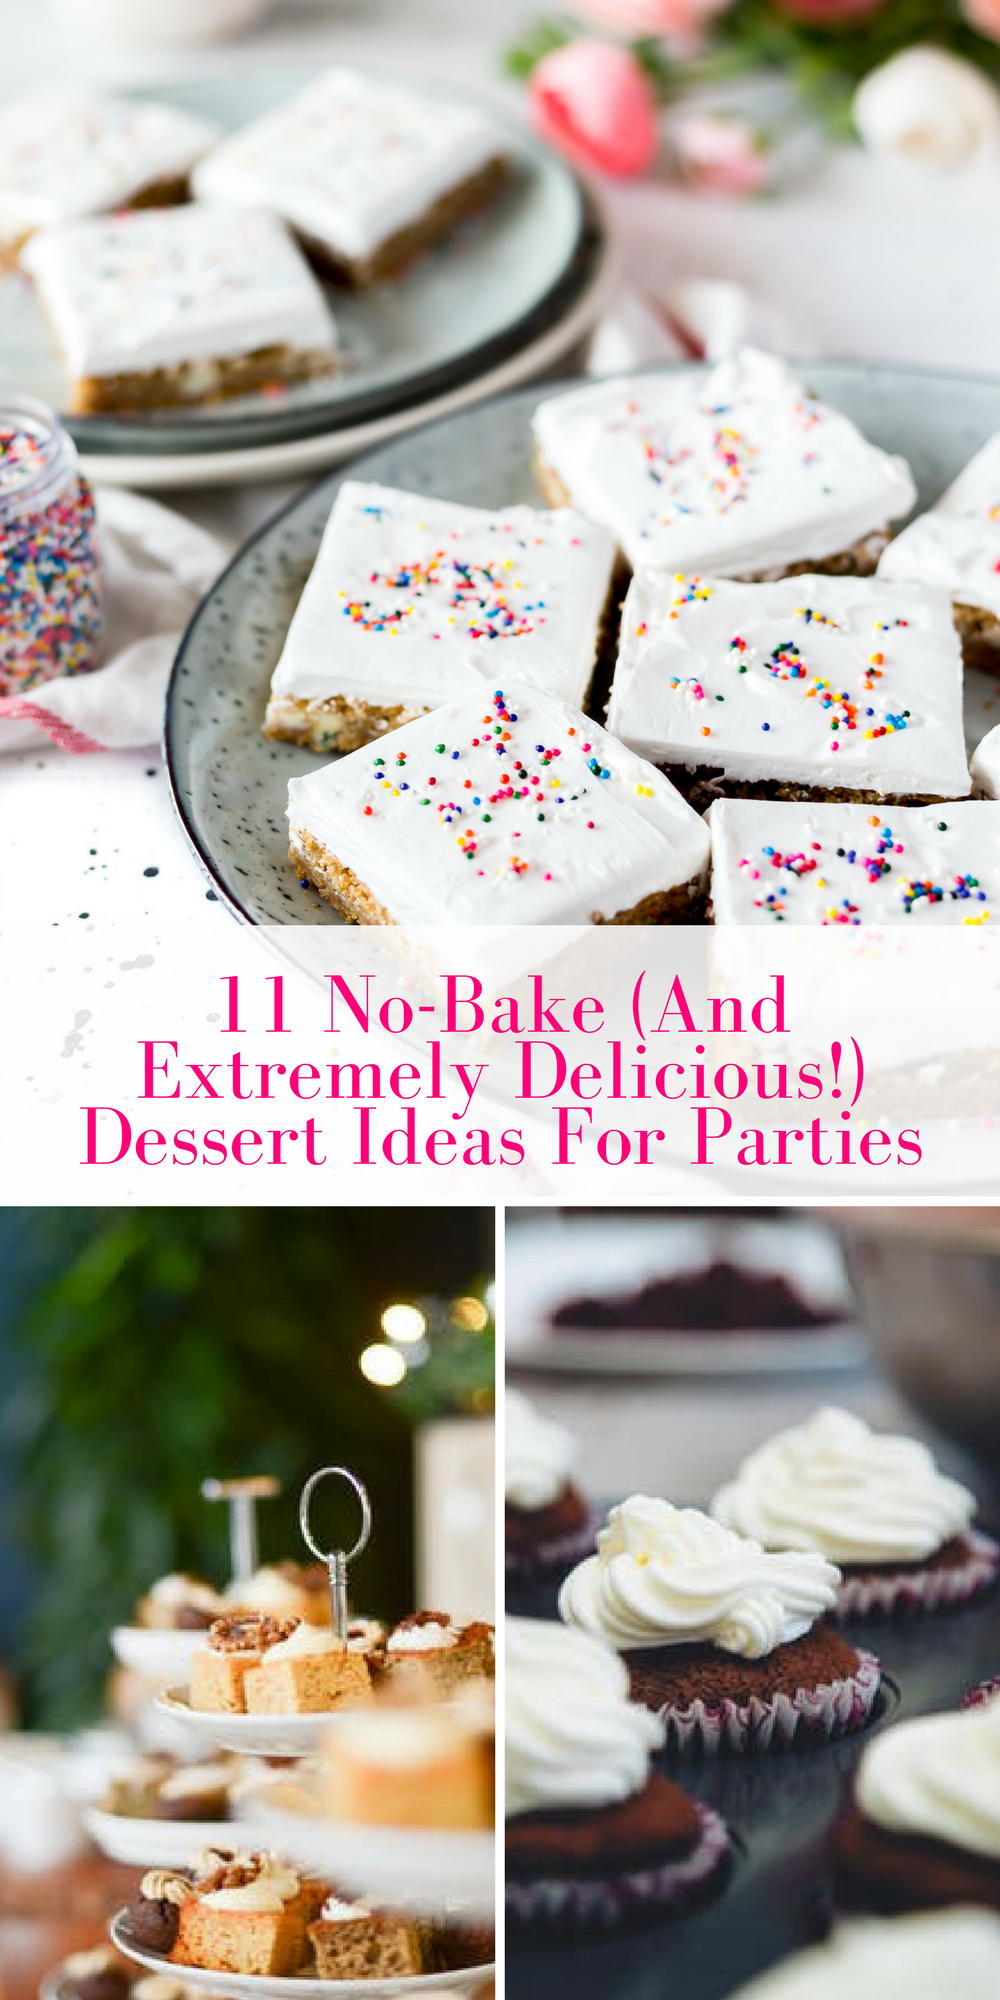 11 No-Bake (And Extremely Easy!) Dessert Ideas For Parties ...